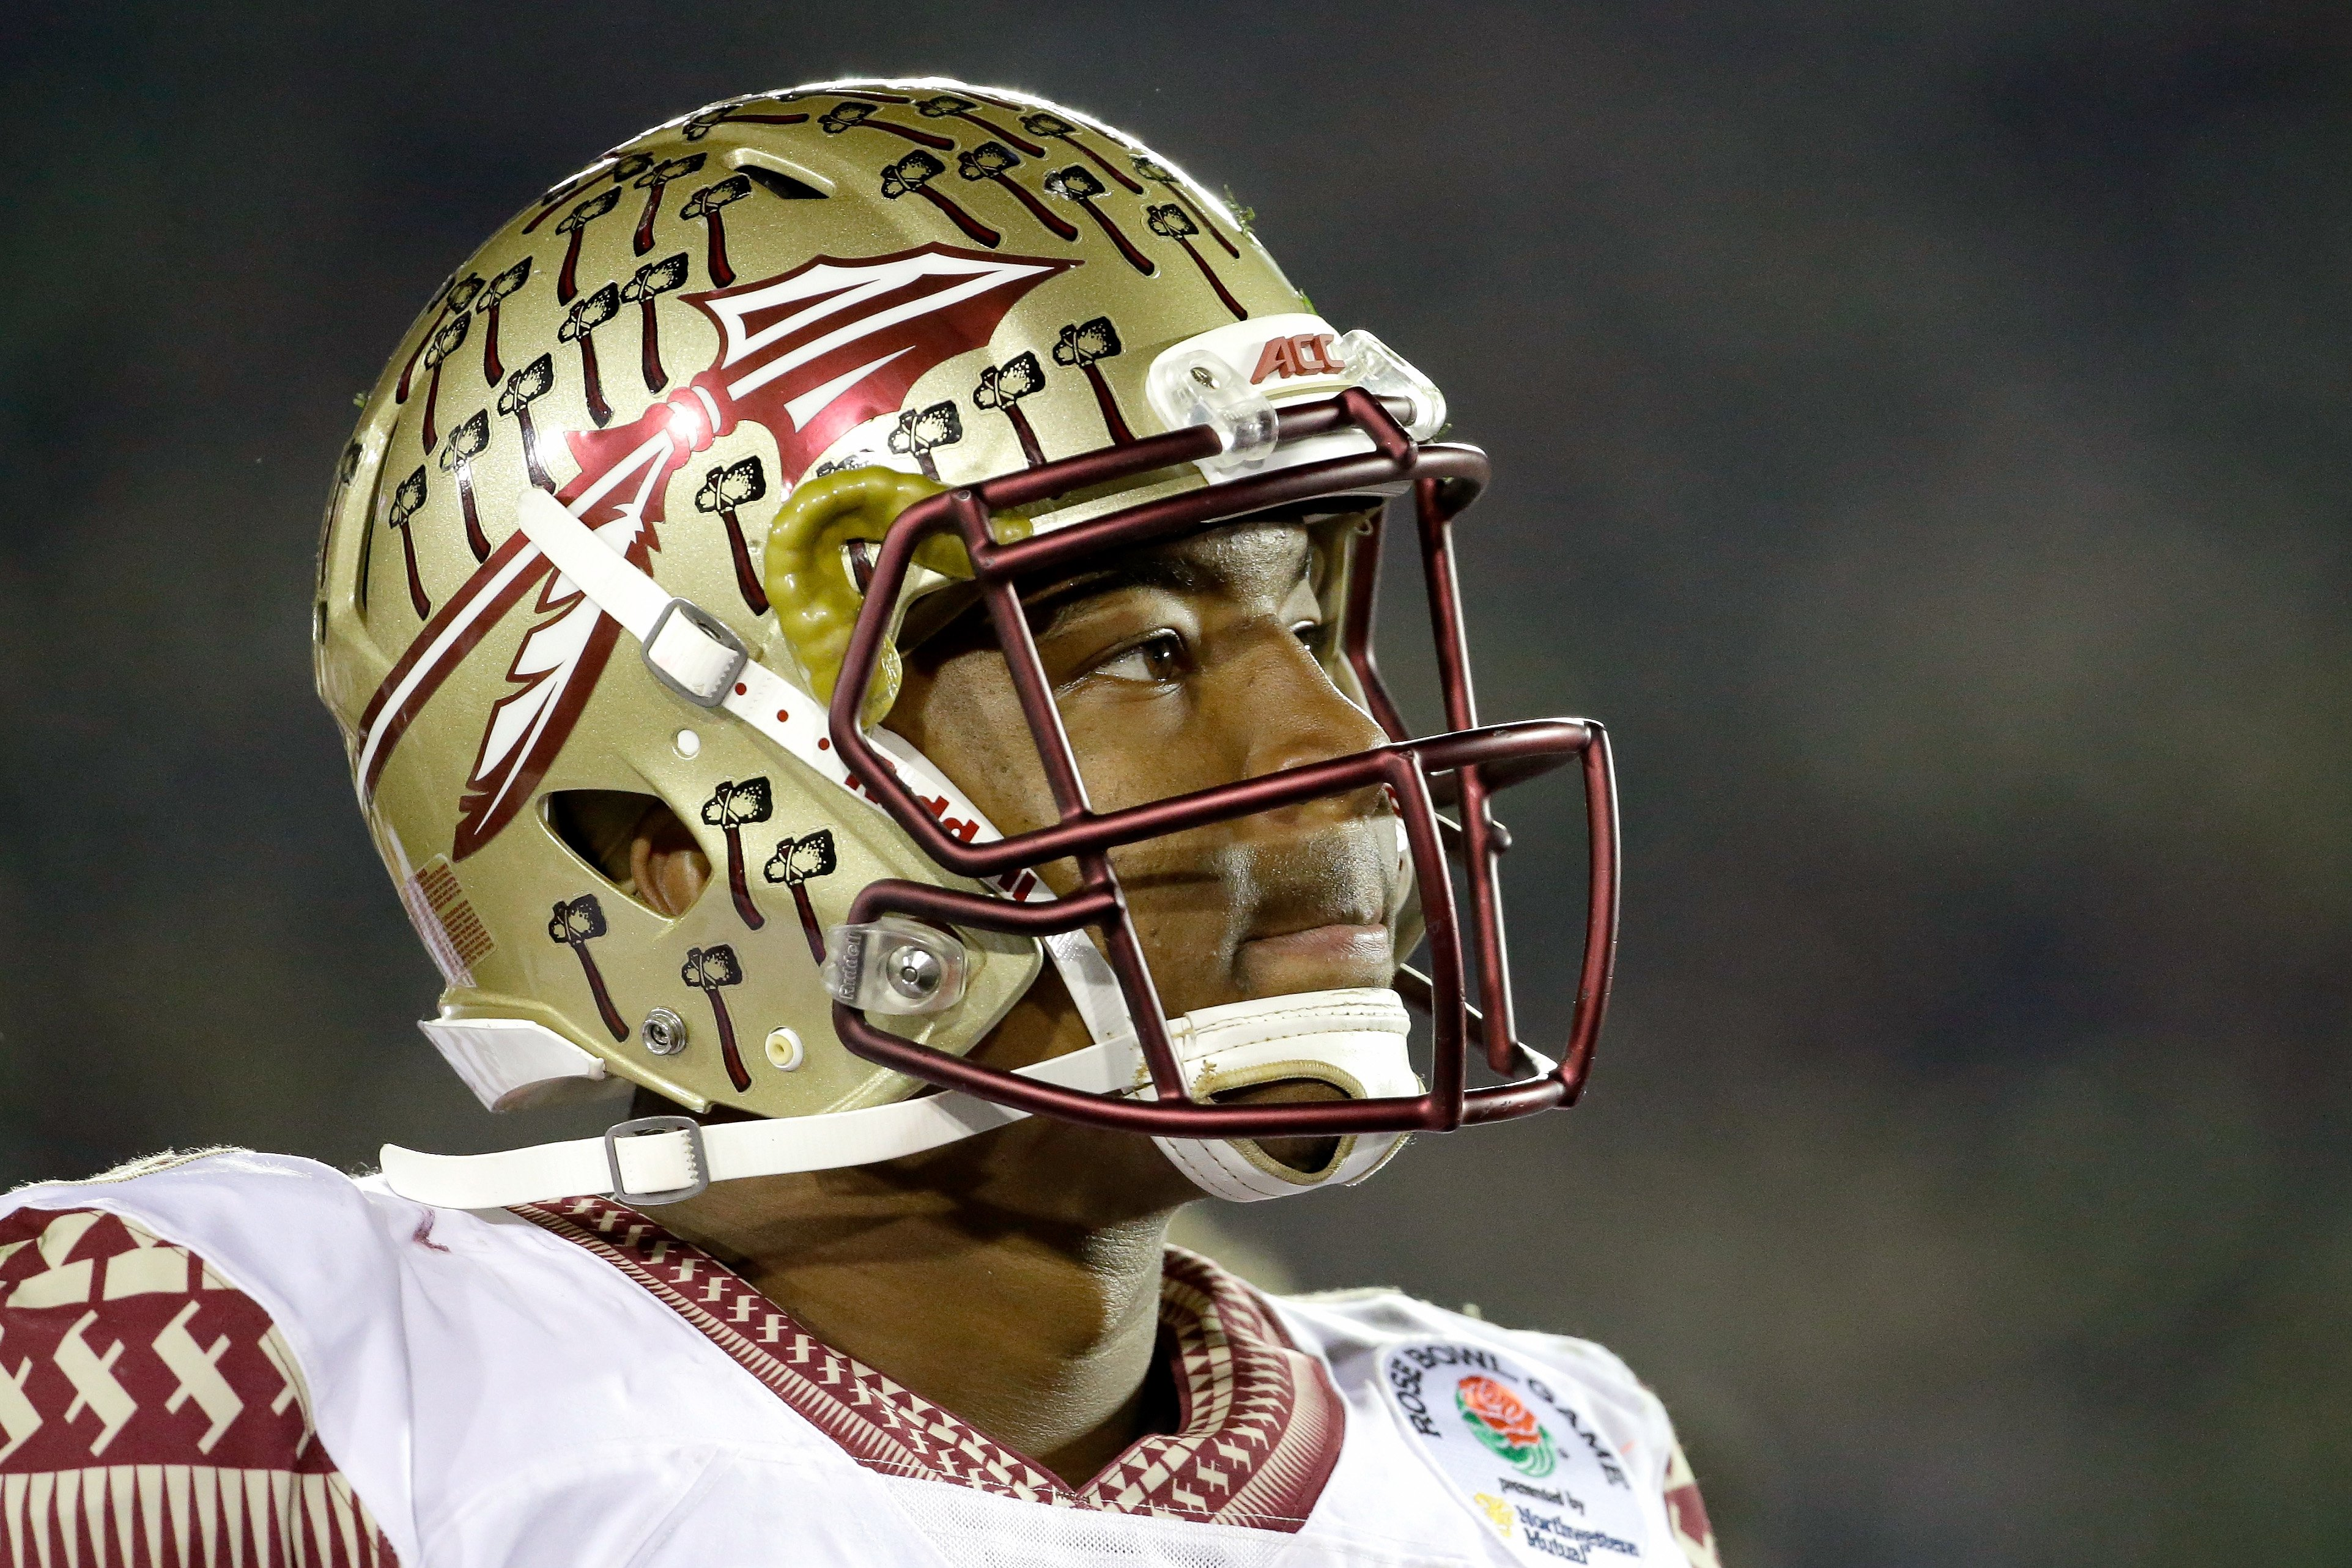 Quarterback Jameis Winston of the Florida State Seminoles looks on during the College Football Playoff Semifinal against the Oregon Ducks at the Rose Bowl Game presented by Northwestern Mutual at the Rose Bowl on Jan. 1, 2015 in Pasadena.